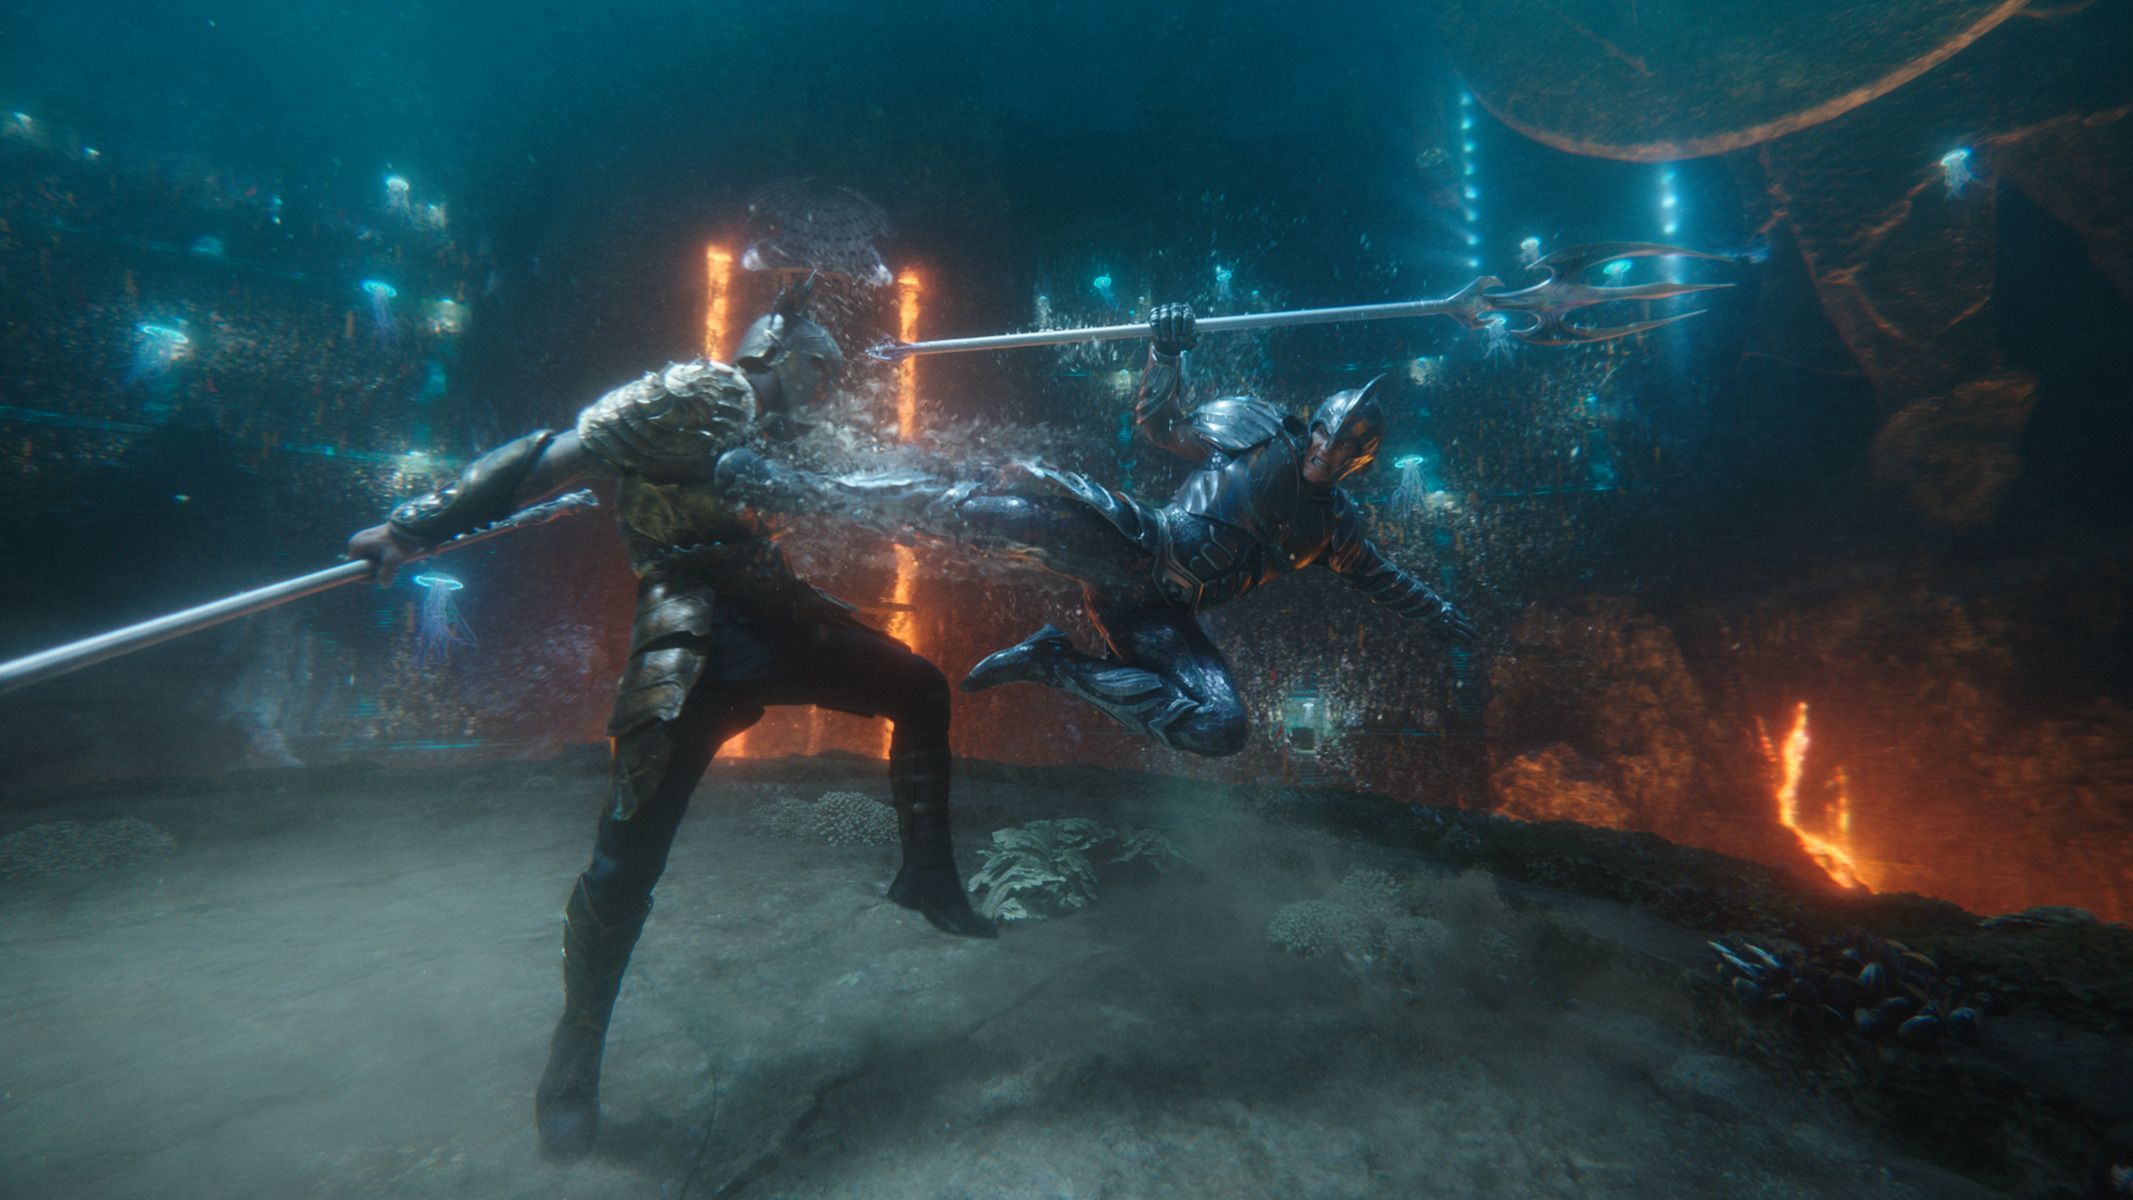 Aquaman overtakes Wonder Woman at global box office